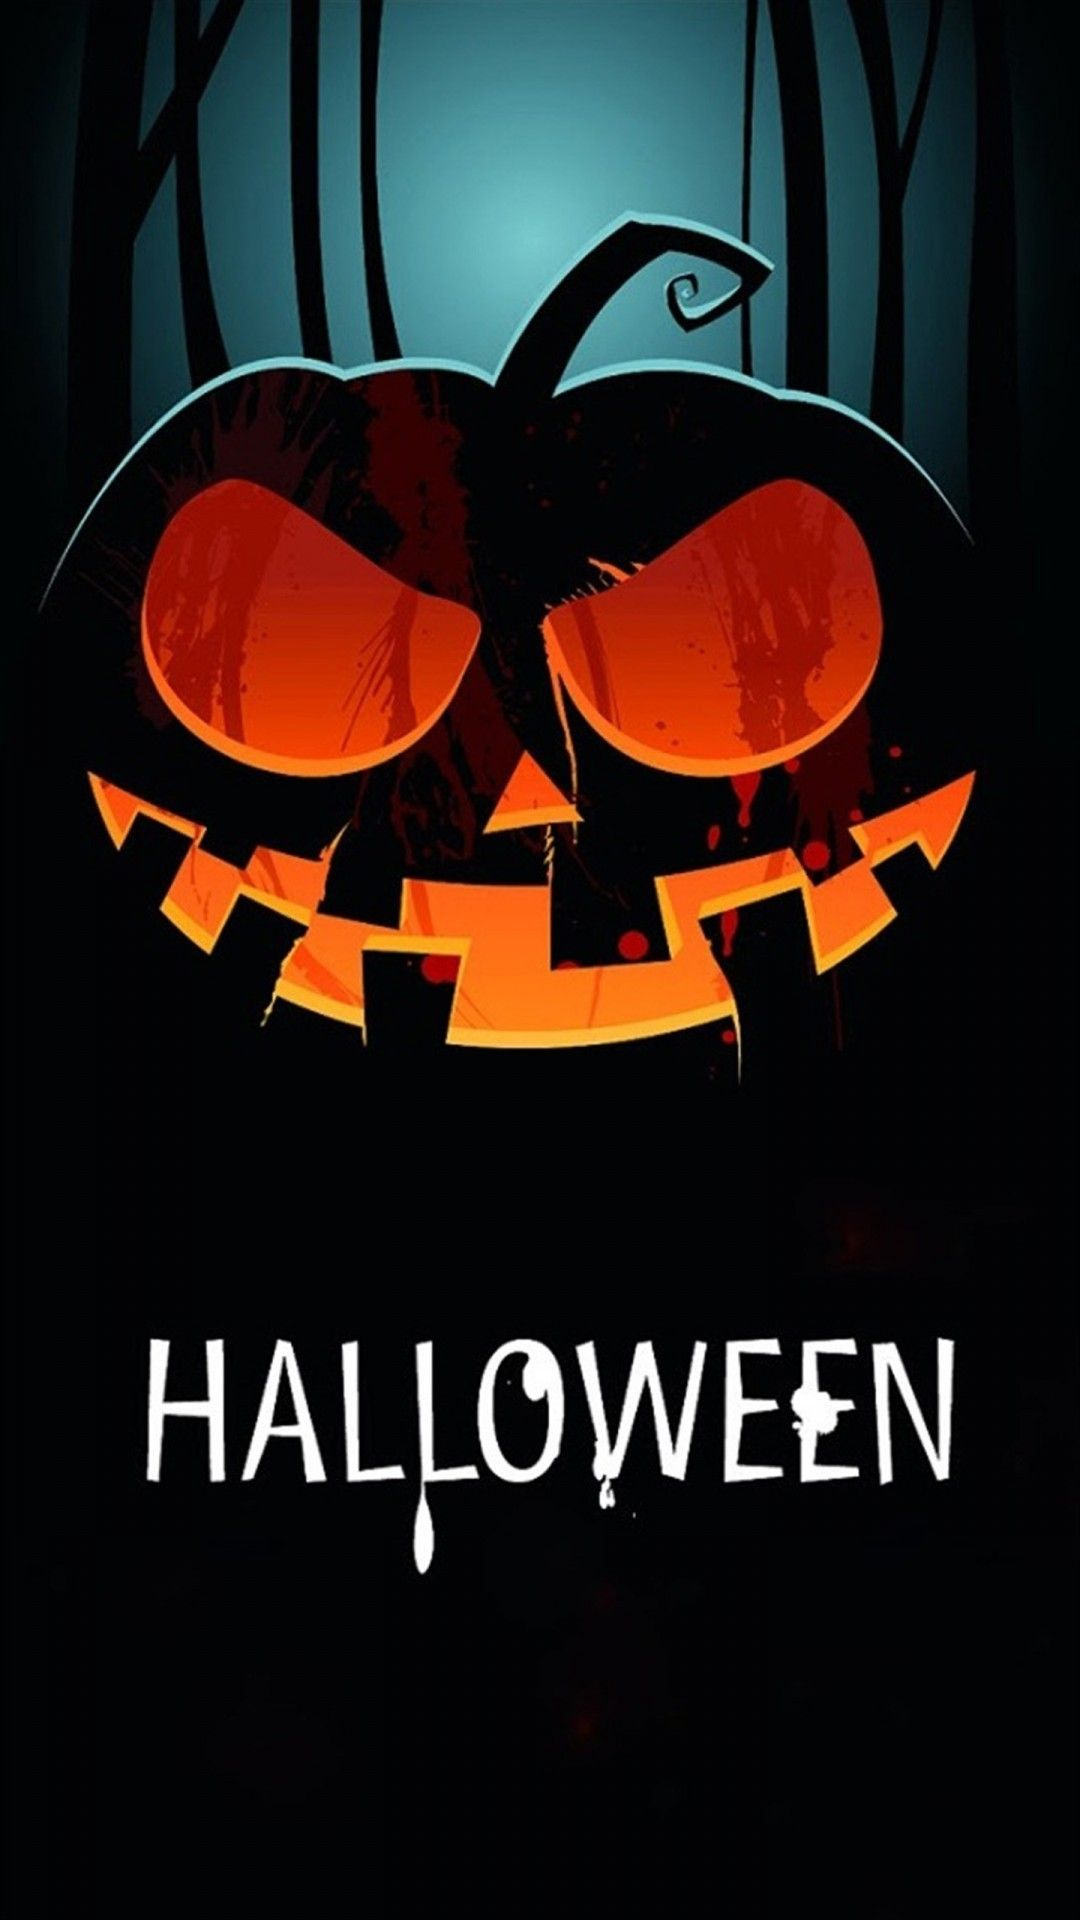 Aesthetic Halloween Wallpaper Android Download Free